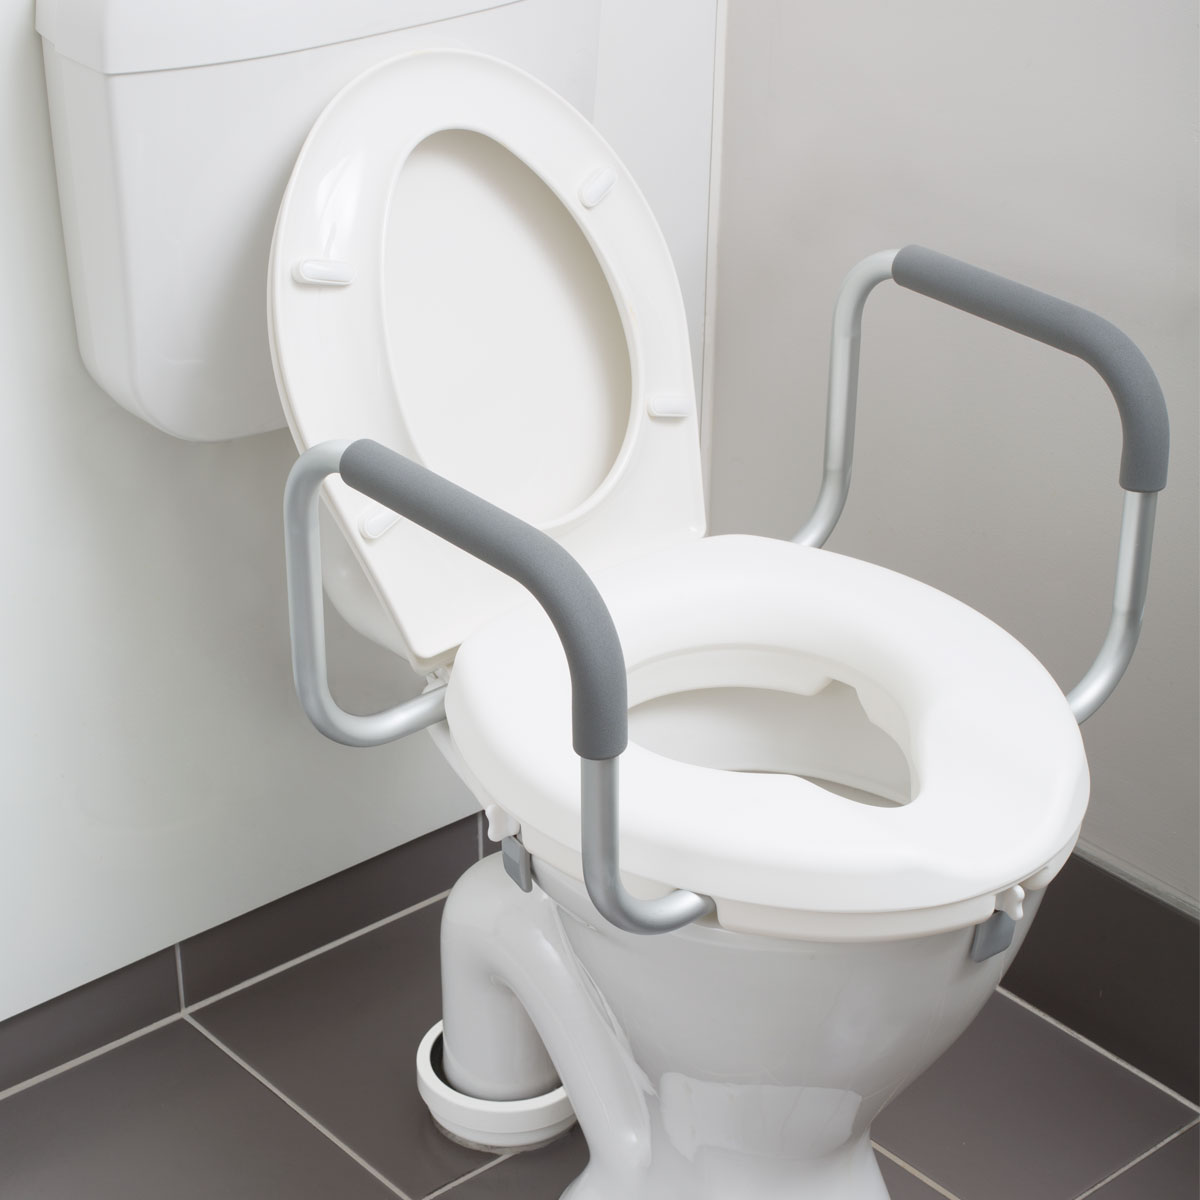 2 Raised Toilet Seat With Arms Mobility Centre